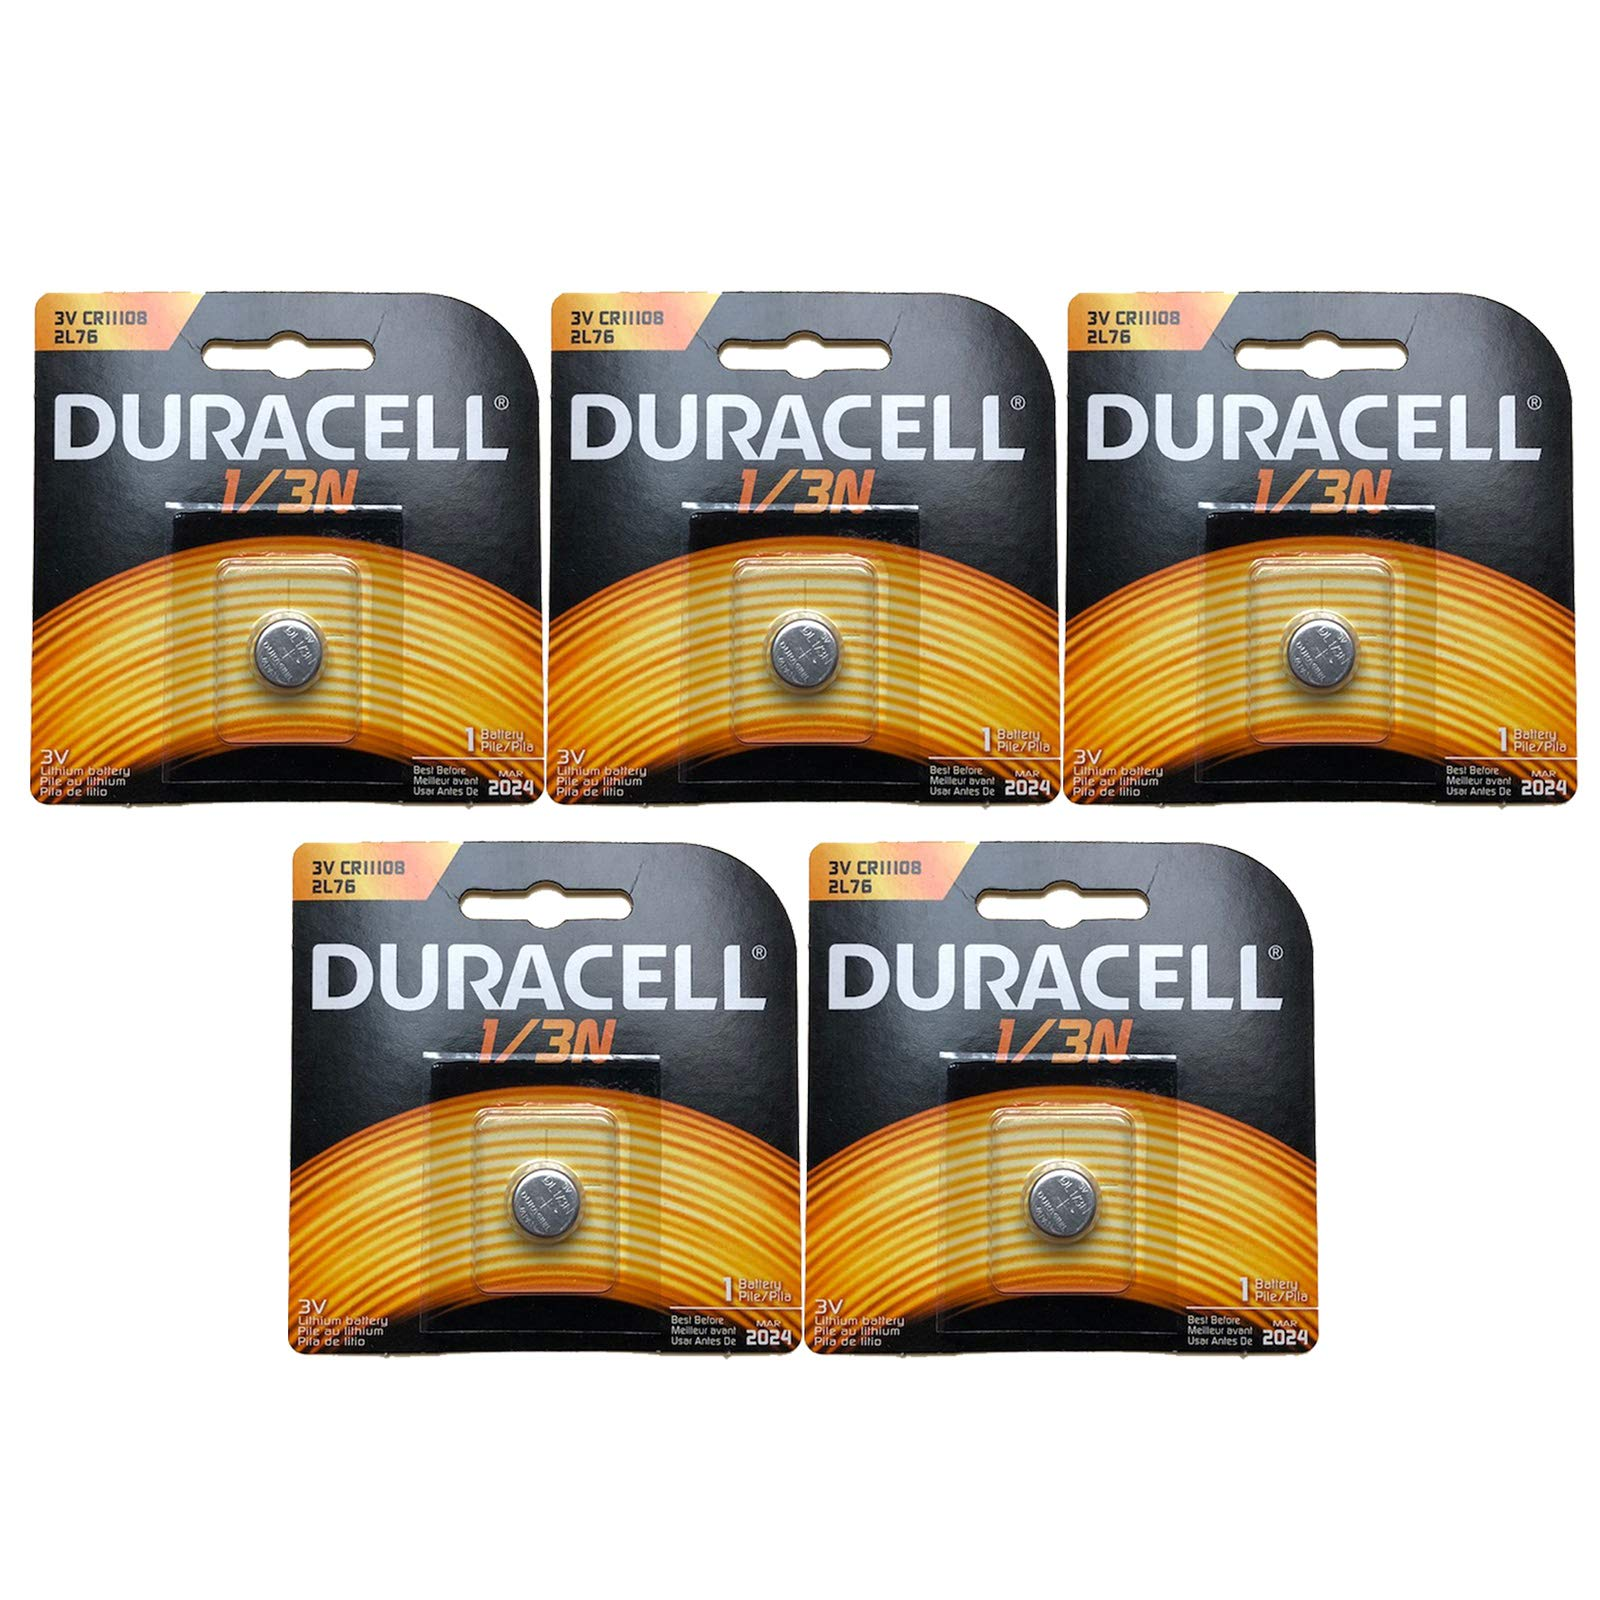 5x Duracell Photo DL CR1/3N 2L76 3V Lithium Battery Replaces Duracell DL-1/3N, 3N, Ray-O-Vac 867, 2L76, Energizer 2L76BP, 2L76-BP, CR1108, IEC CR11108, CR1-3N, DL1-3N, Comp 15, Duracell DL1/3N, NL1/3N by Exell Battery